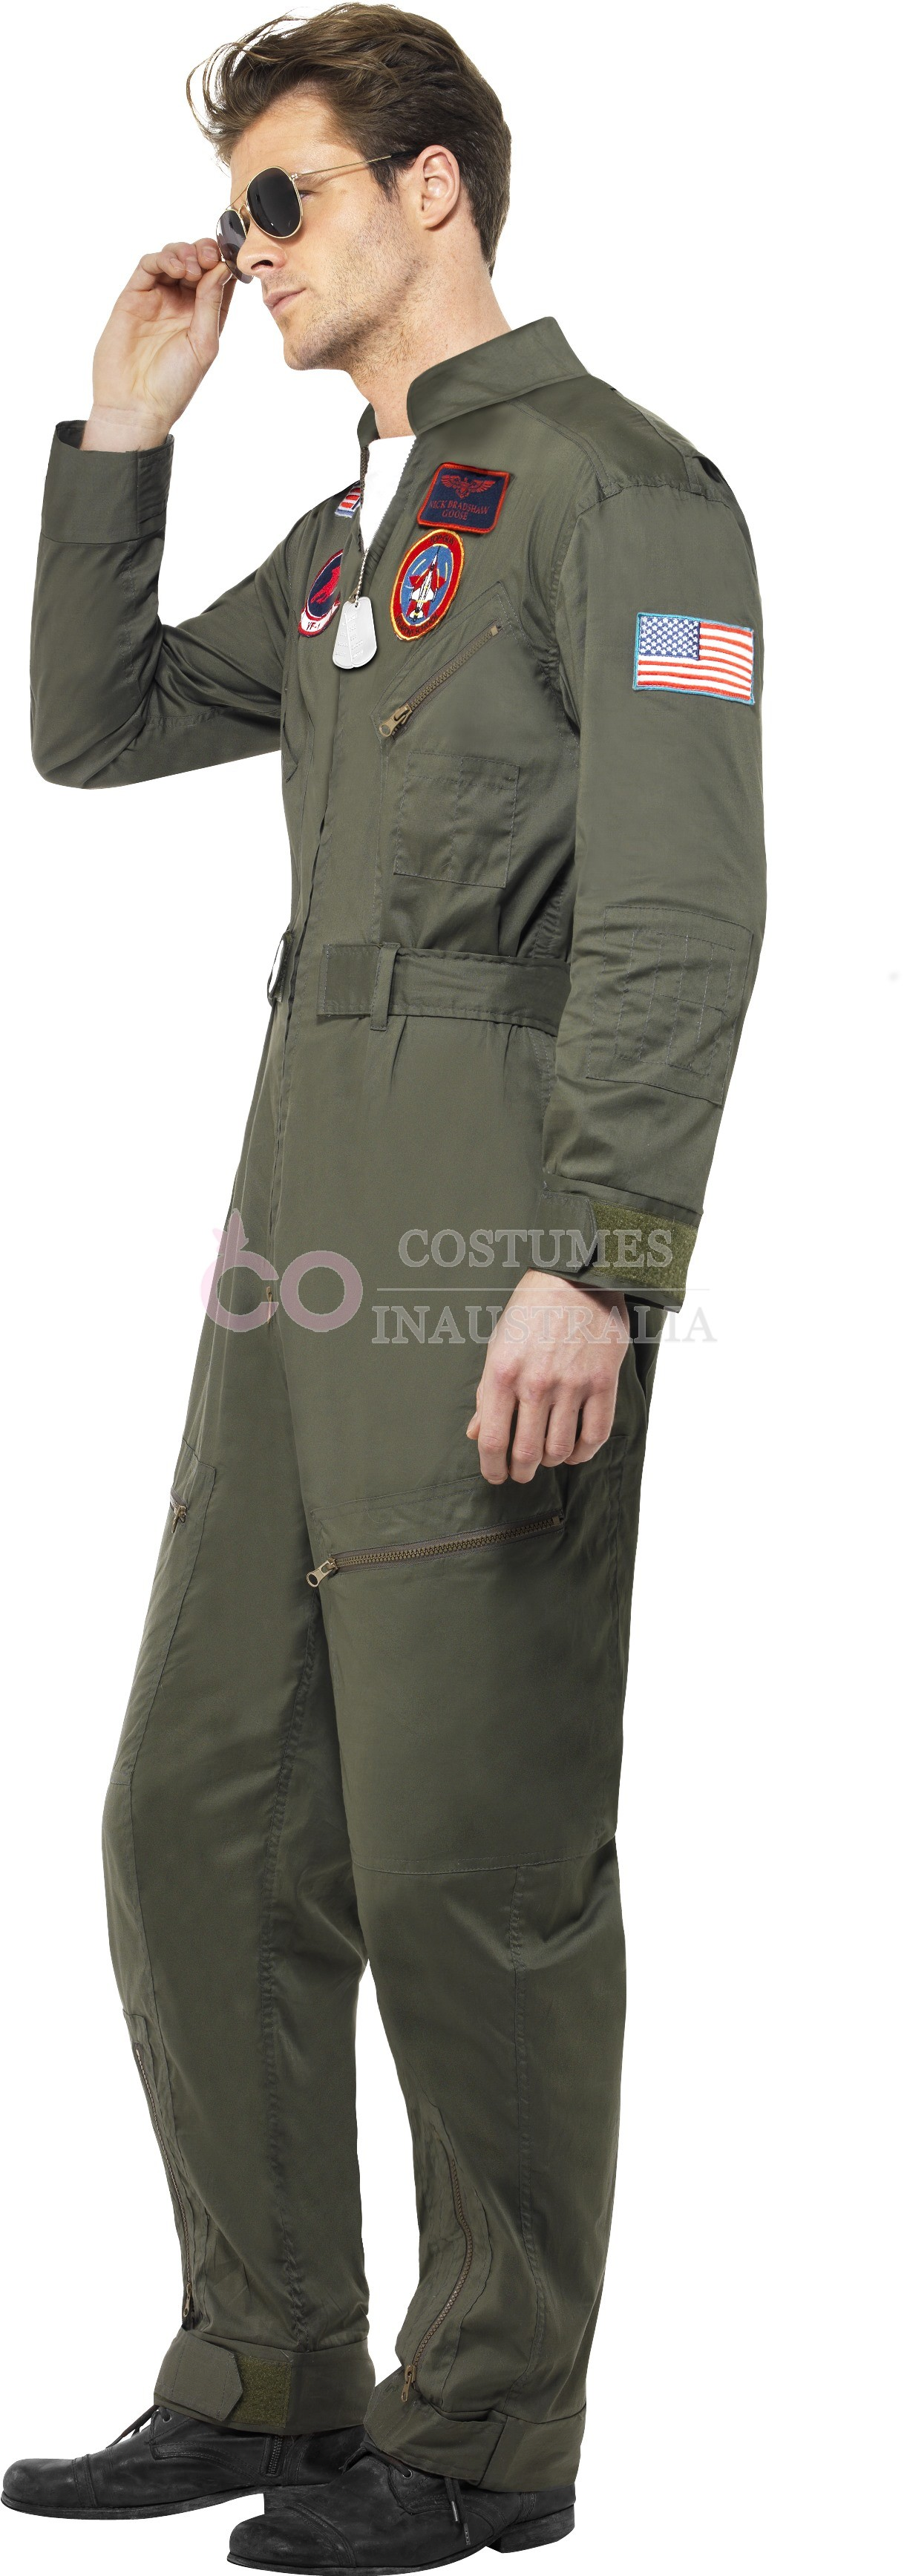 Pin on Dude! I Want That! September 2014  Top Gun Mens Outfit